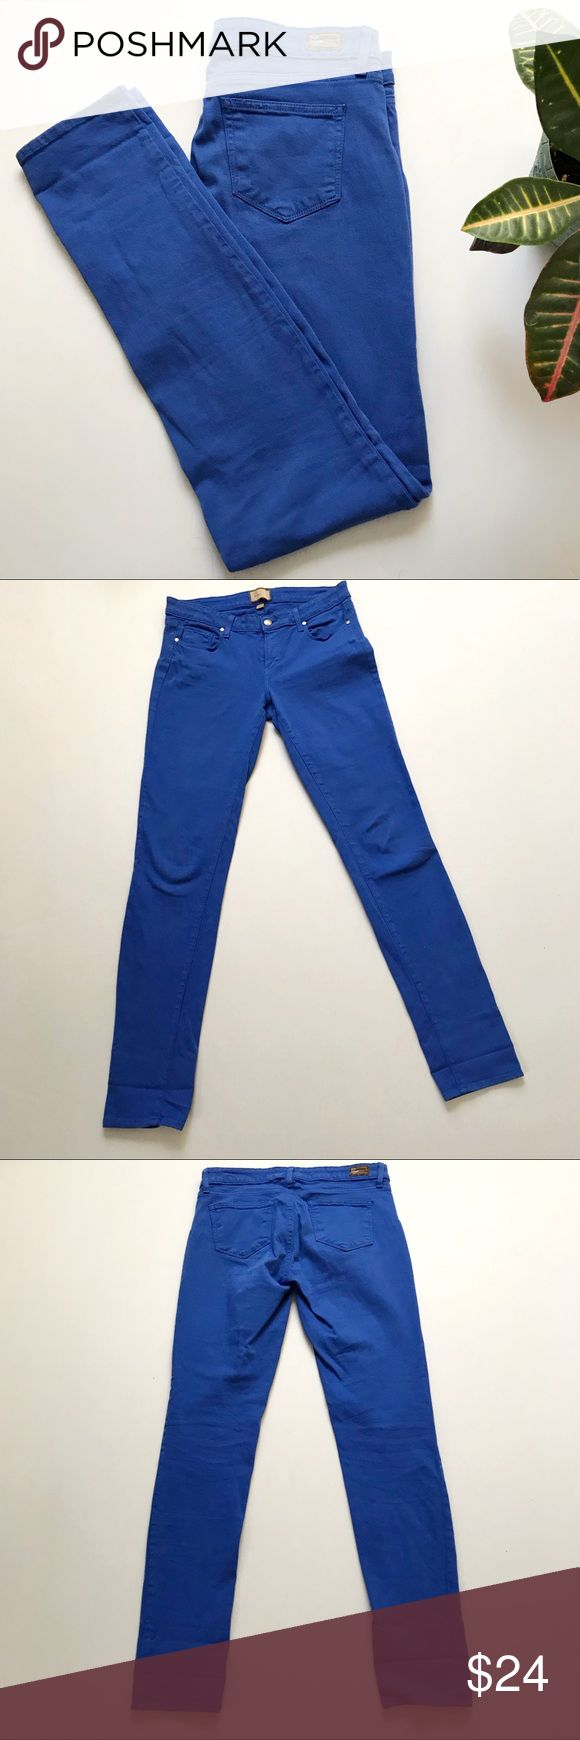 Paige Peg Skinny Cobalt Jeans Peg skinny colbalt Jeans from Paige. Size: 29. Color: Parasol Blue. Mid rise skinny jeans in a bright fun color. 5 pocket construction. 98% cotton, 2% spandex. Inseam: 34 inches. Rise: 8.5 inches. PAIGE Jeans Skinny